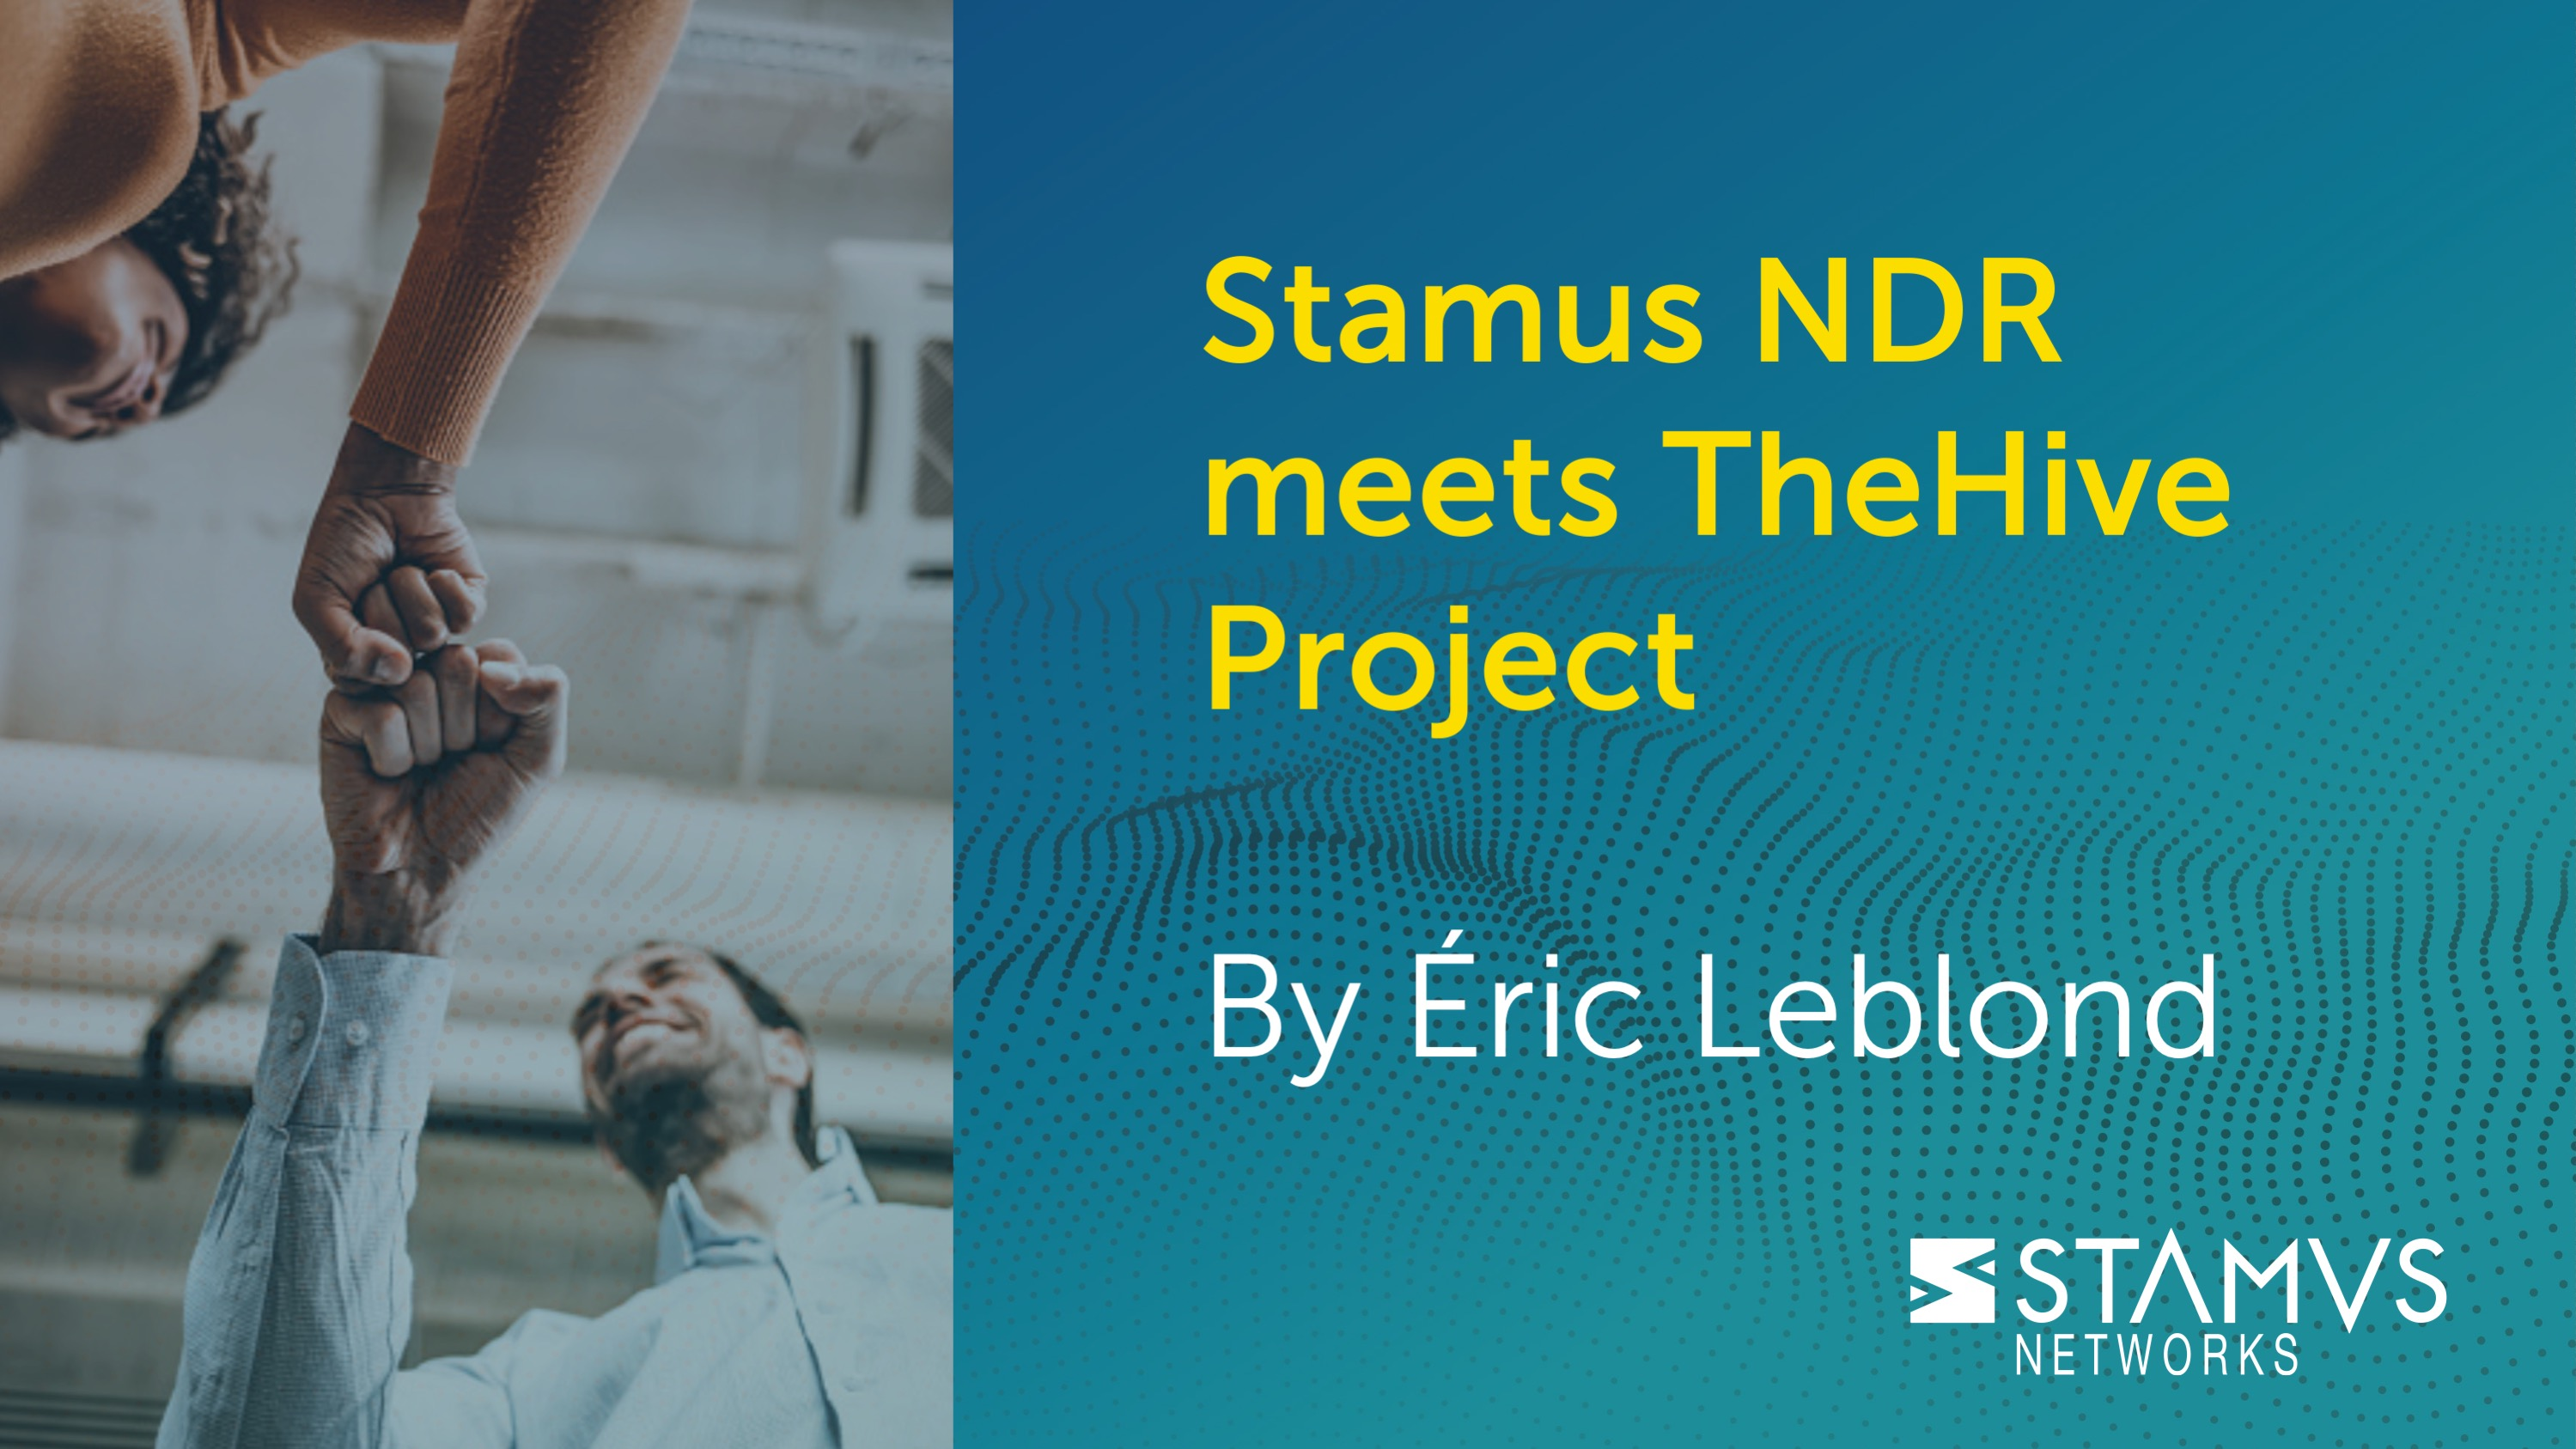 Stamus NDR meets TheHive Project